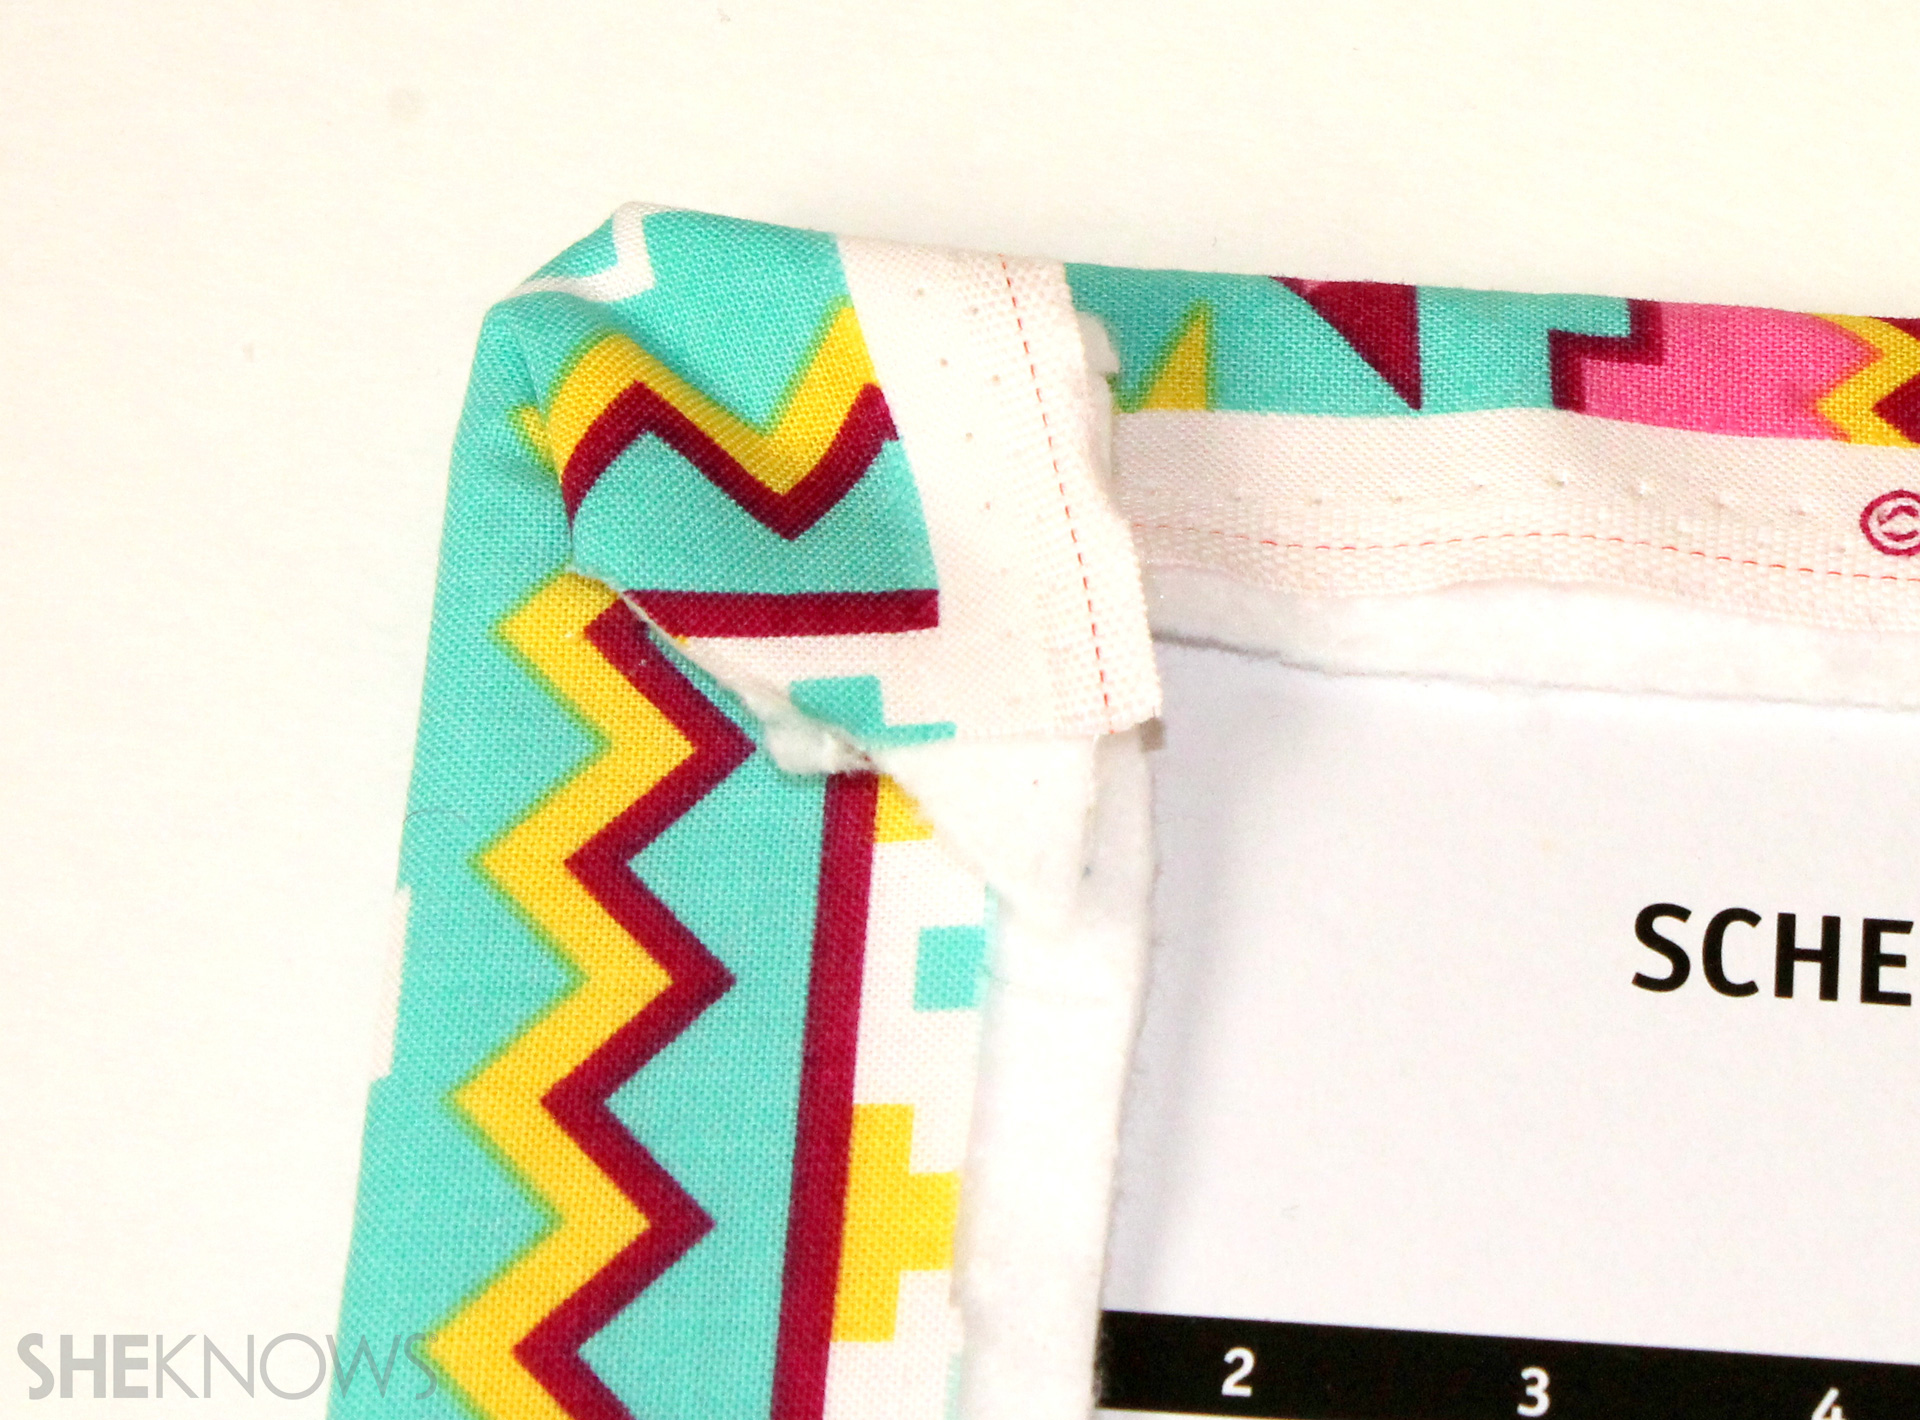 fabric covered composition book: For the corners, trim excess fabric and then fold and glue